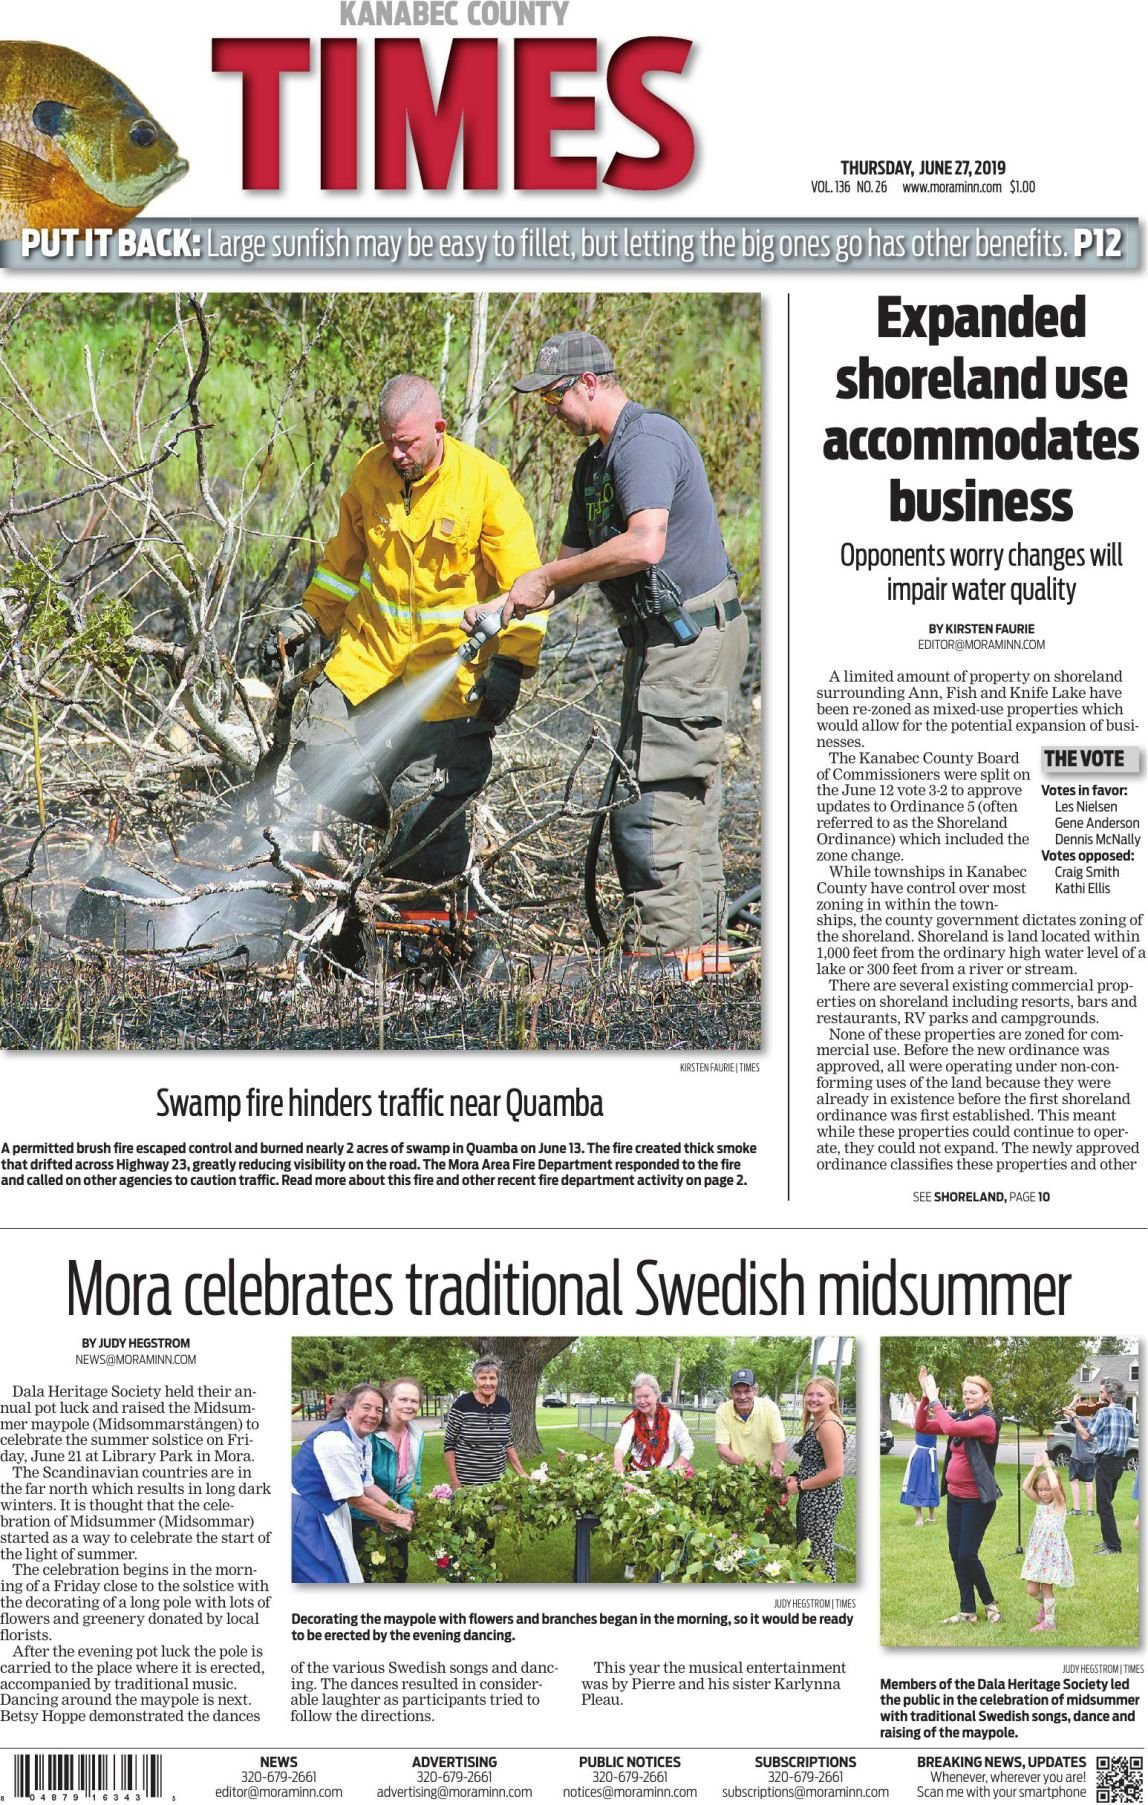 Kanabec County Times E-edition June 27, 2019